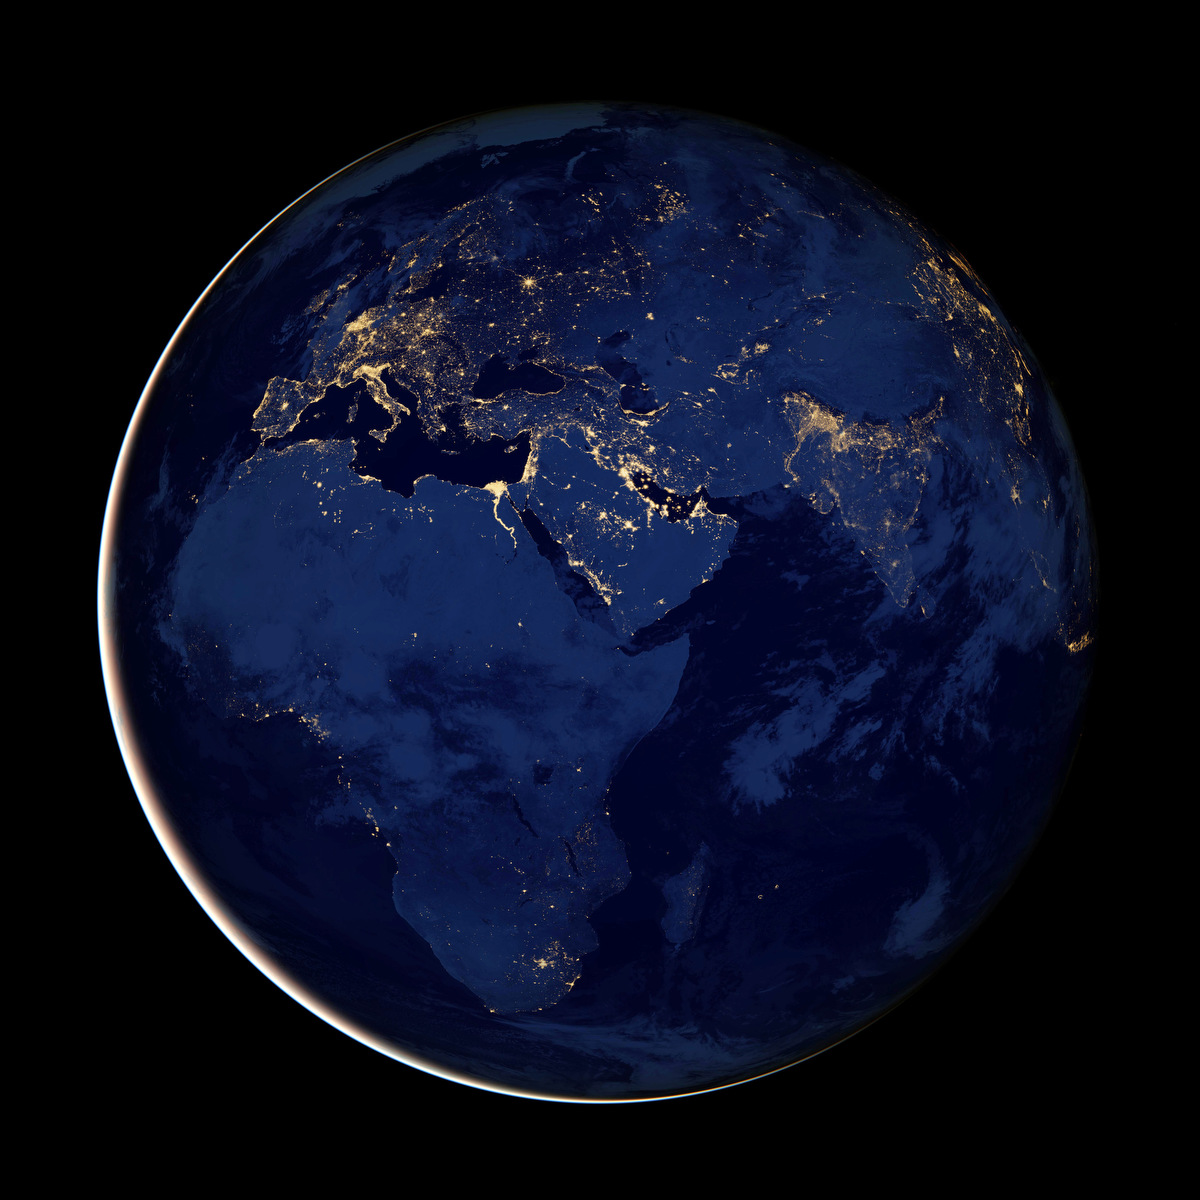 Nasa earth observatory photos For printables sorted by Activit - Making Learning Fun